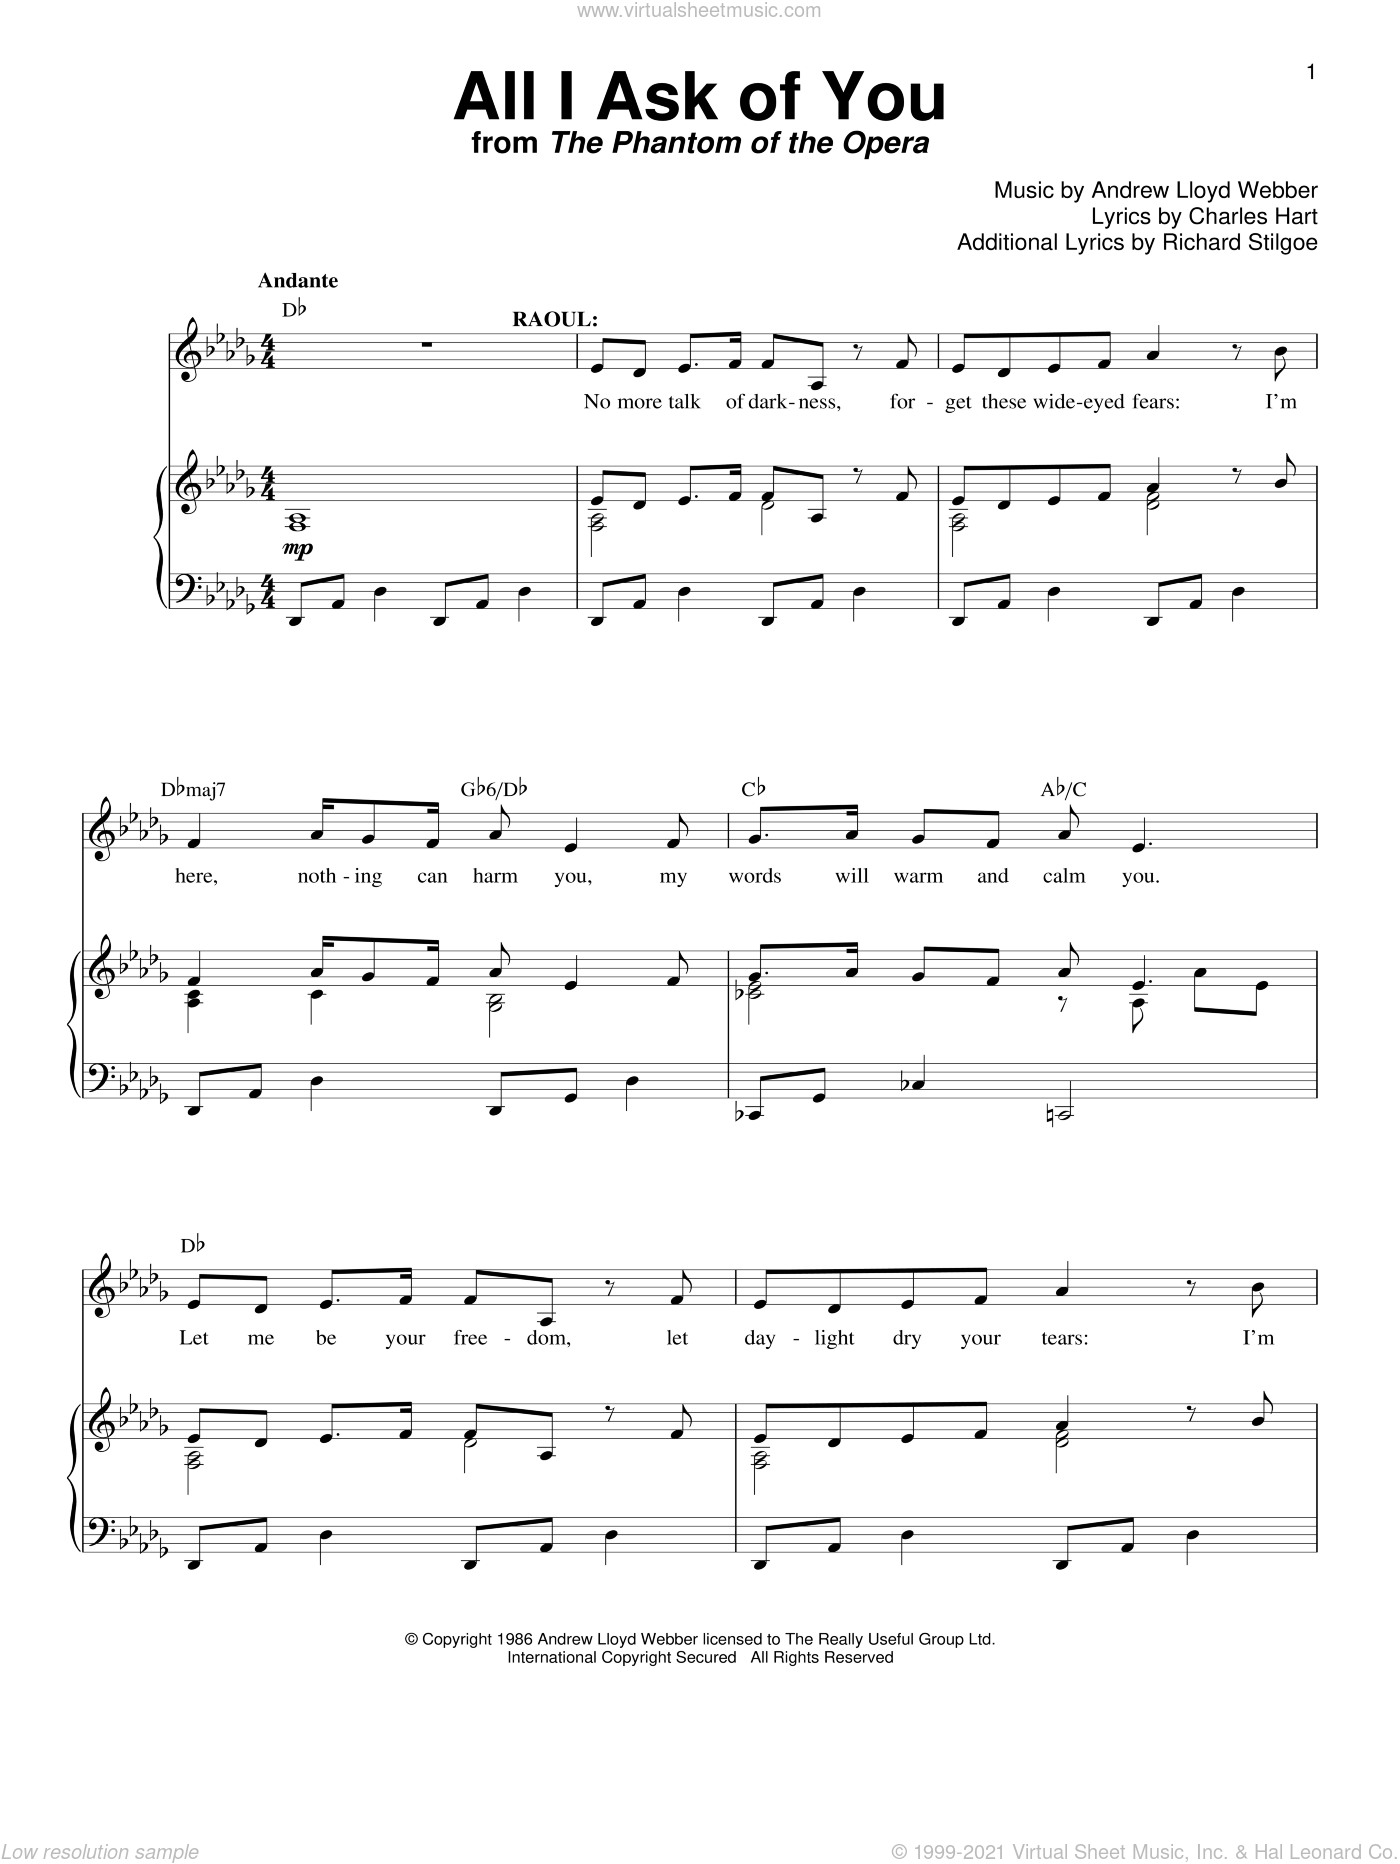 All I Ask Of You (from The Phantom Of The Opera) sheet music for voice and piano by Andrew Lloyd Webber, The Phantom Of The Opera (Musical), Charles Hart and Richard Stilgoe, wedding score, intermediate skill level